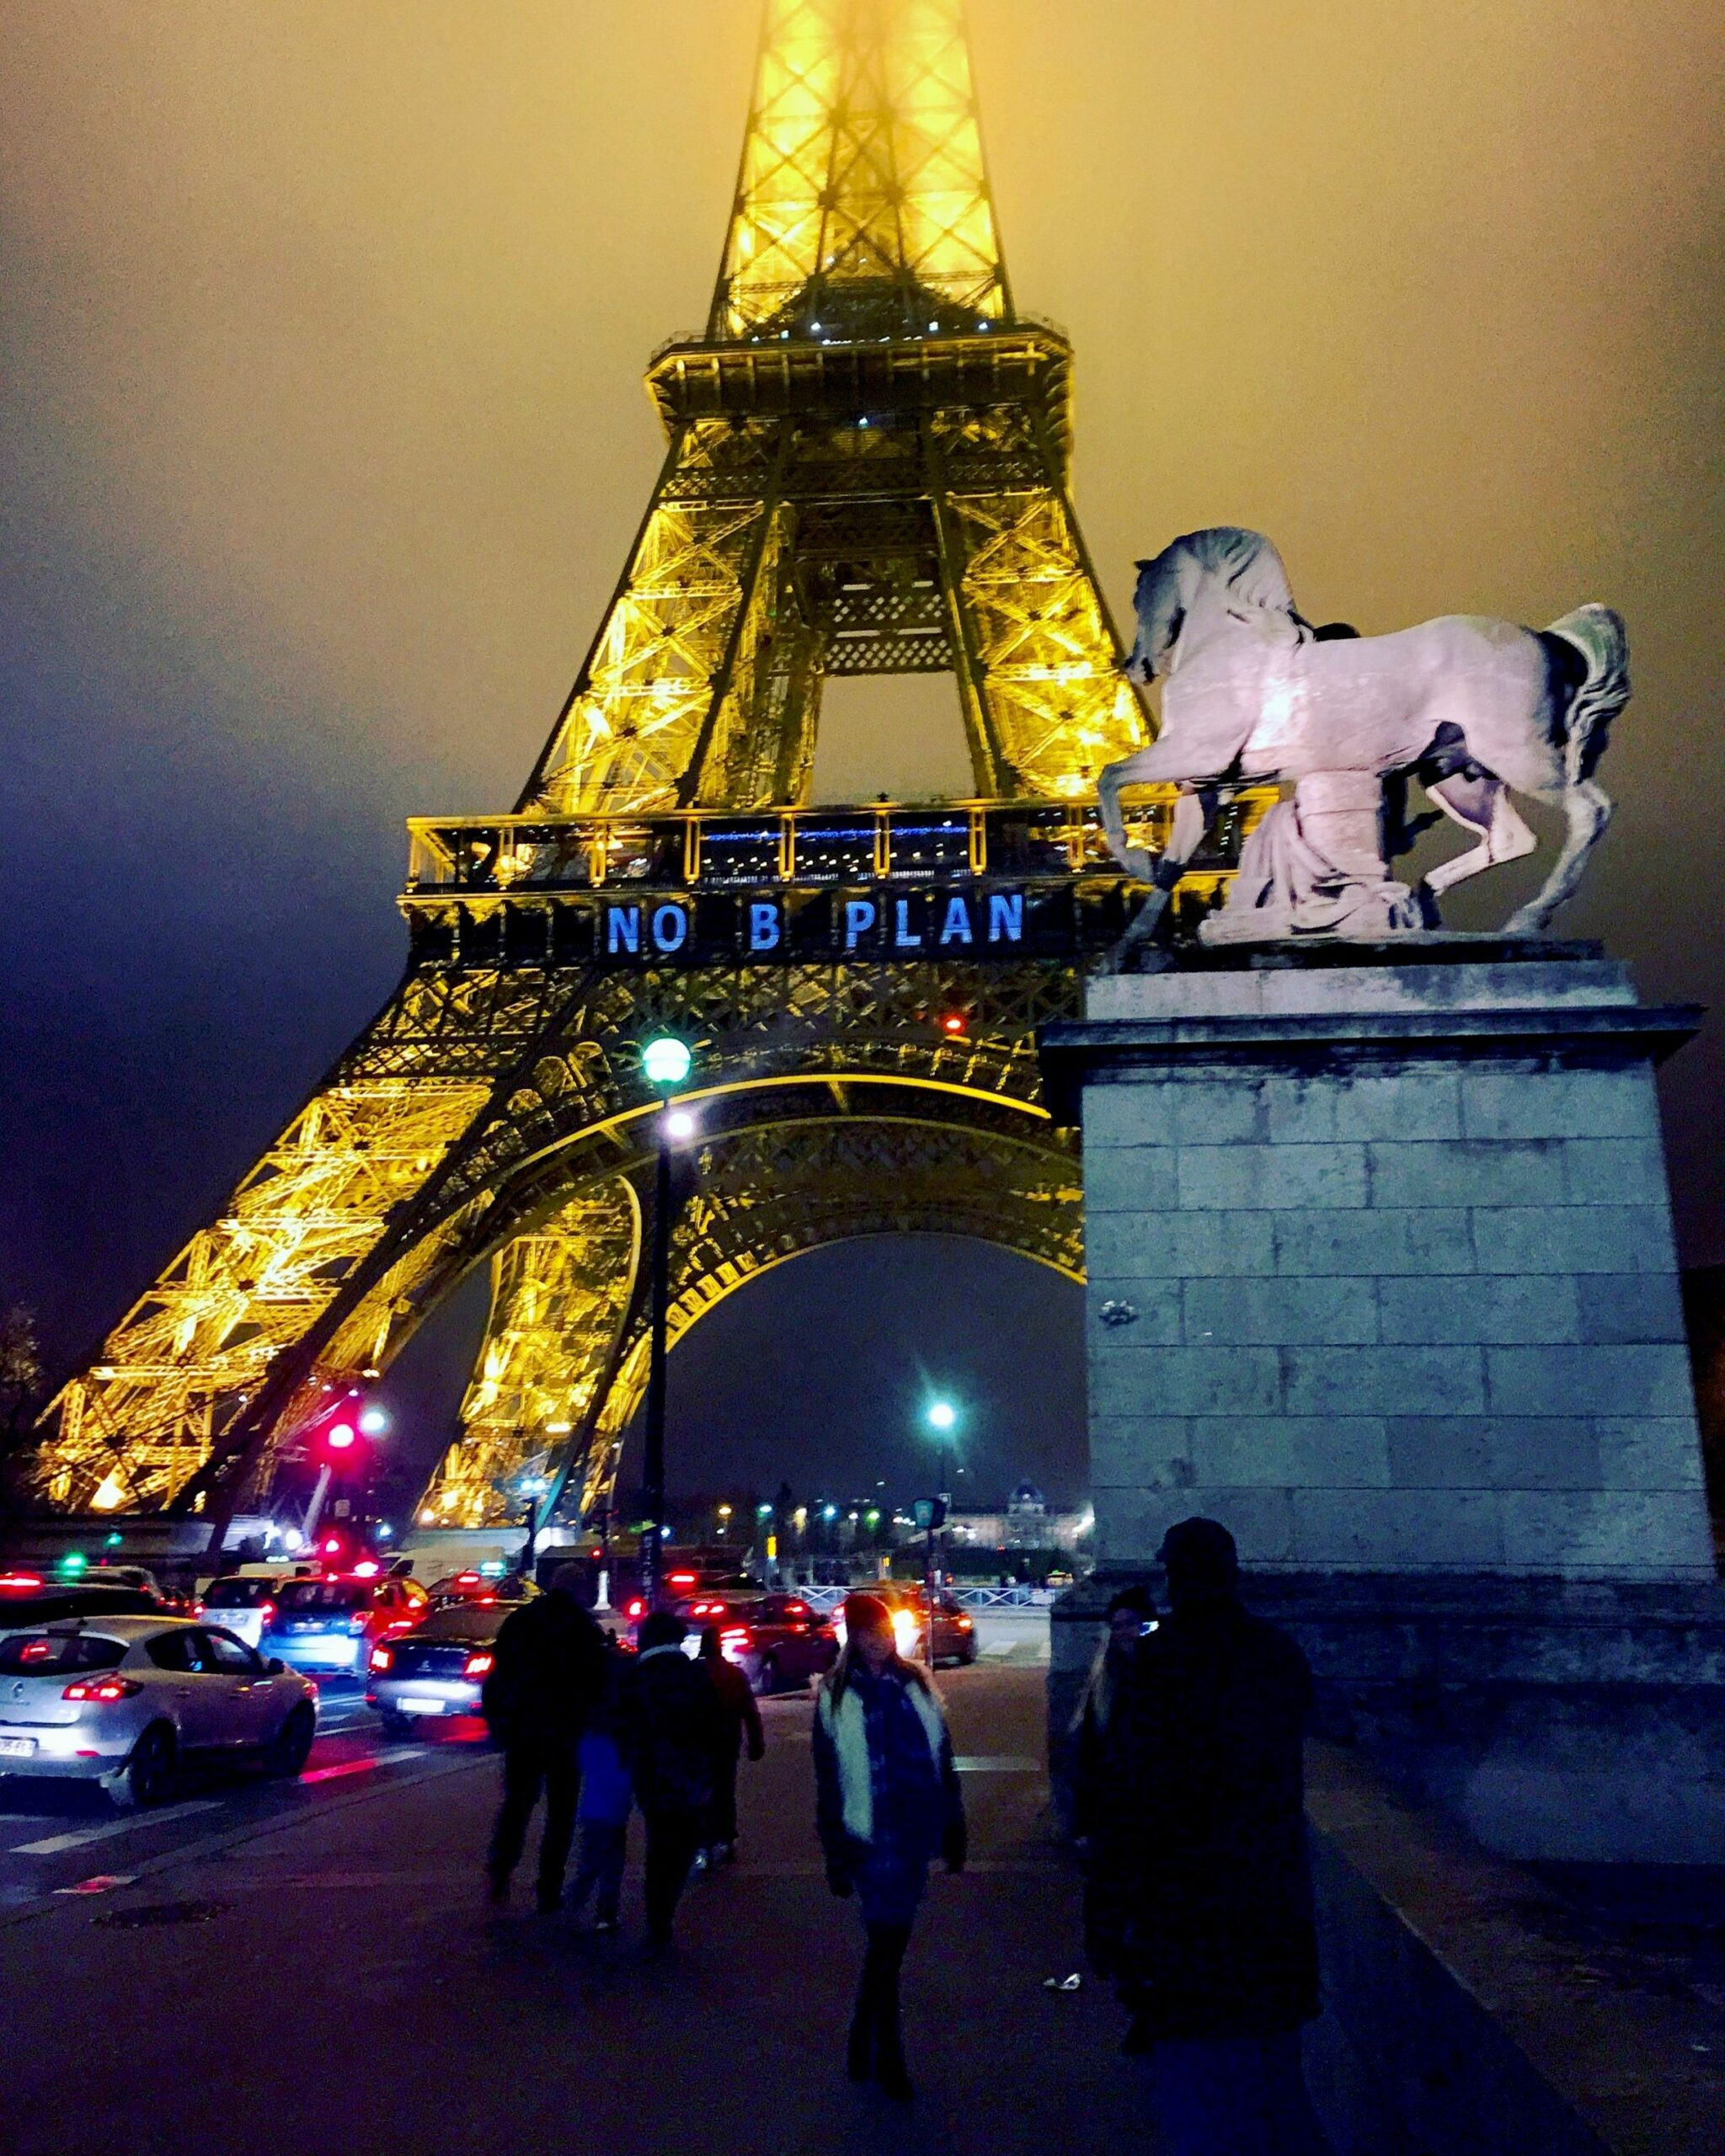 """Lights on the Eiffel Tower In Paris caution """"No B Plan"""" (No Plan B) during the 2015 climate talks."""